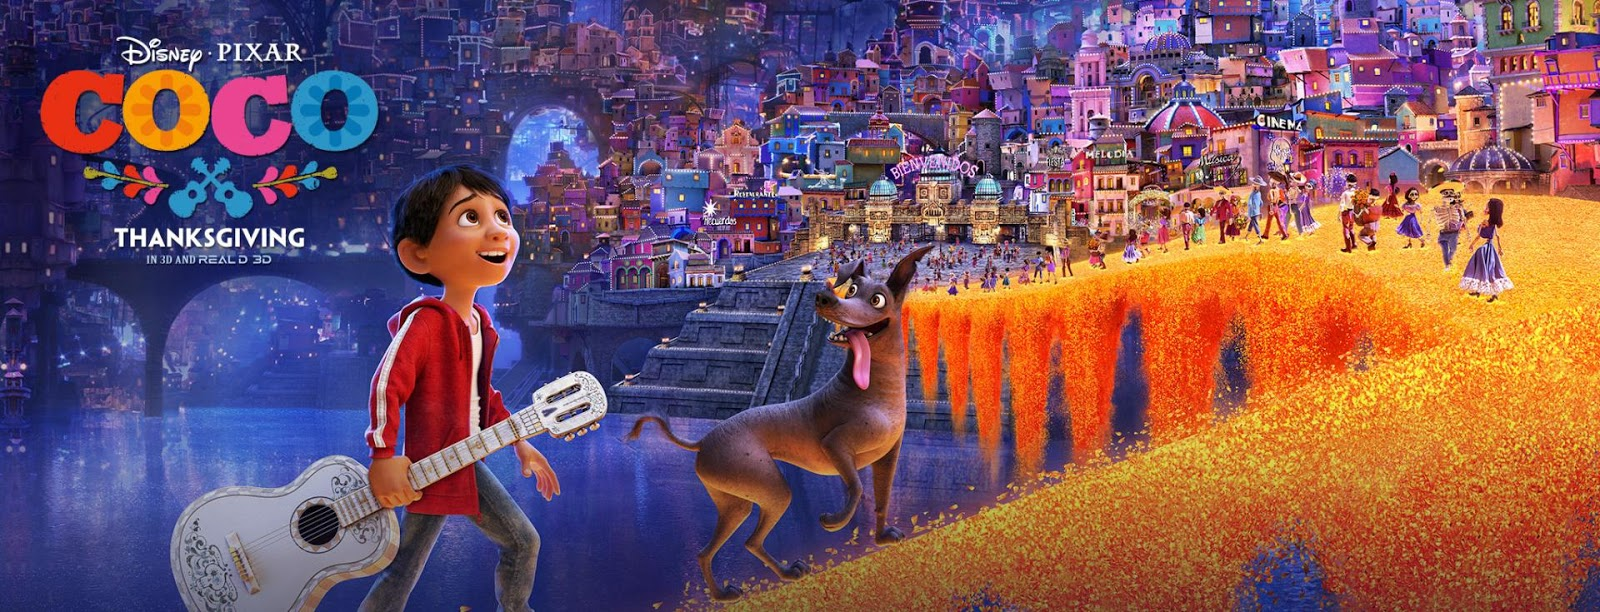 Review Film Coco 2017 Lpm Psikogenesis